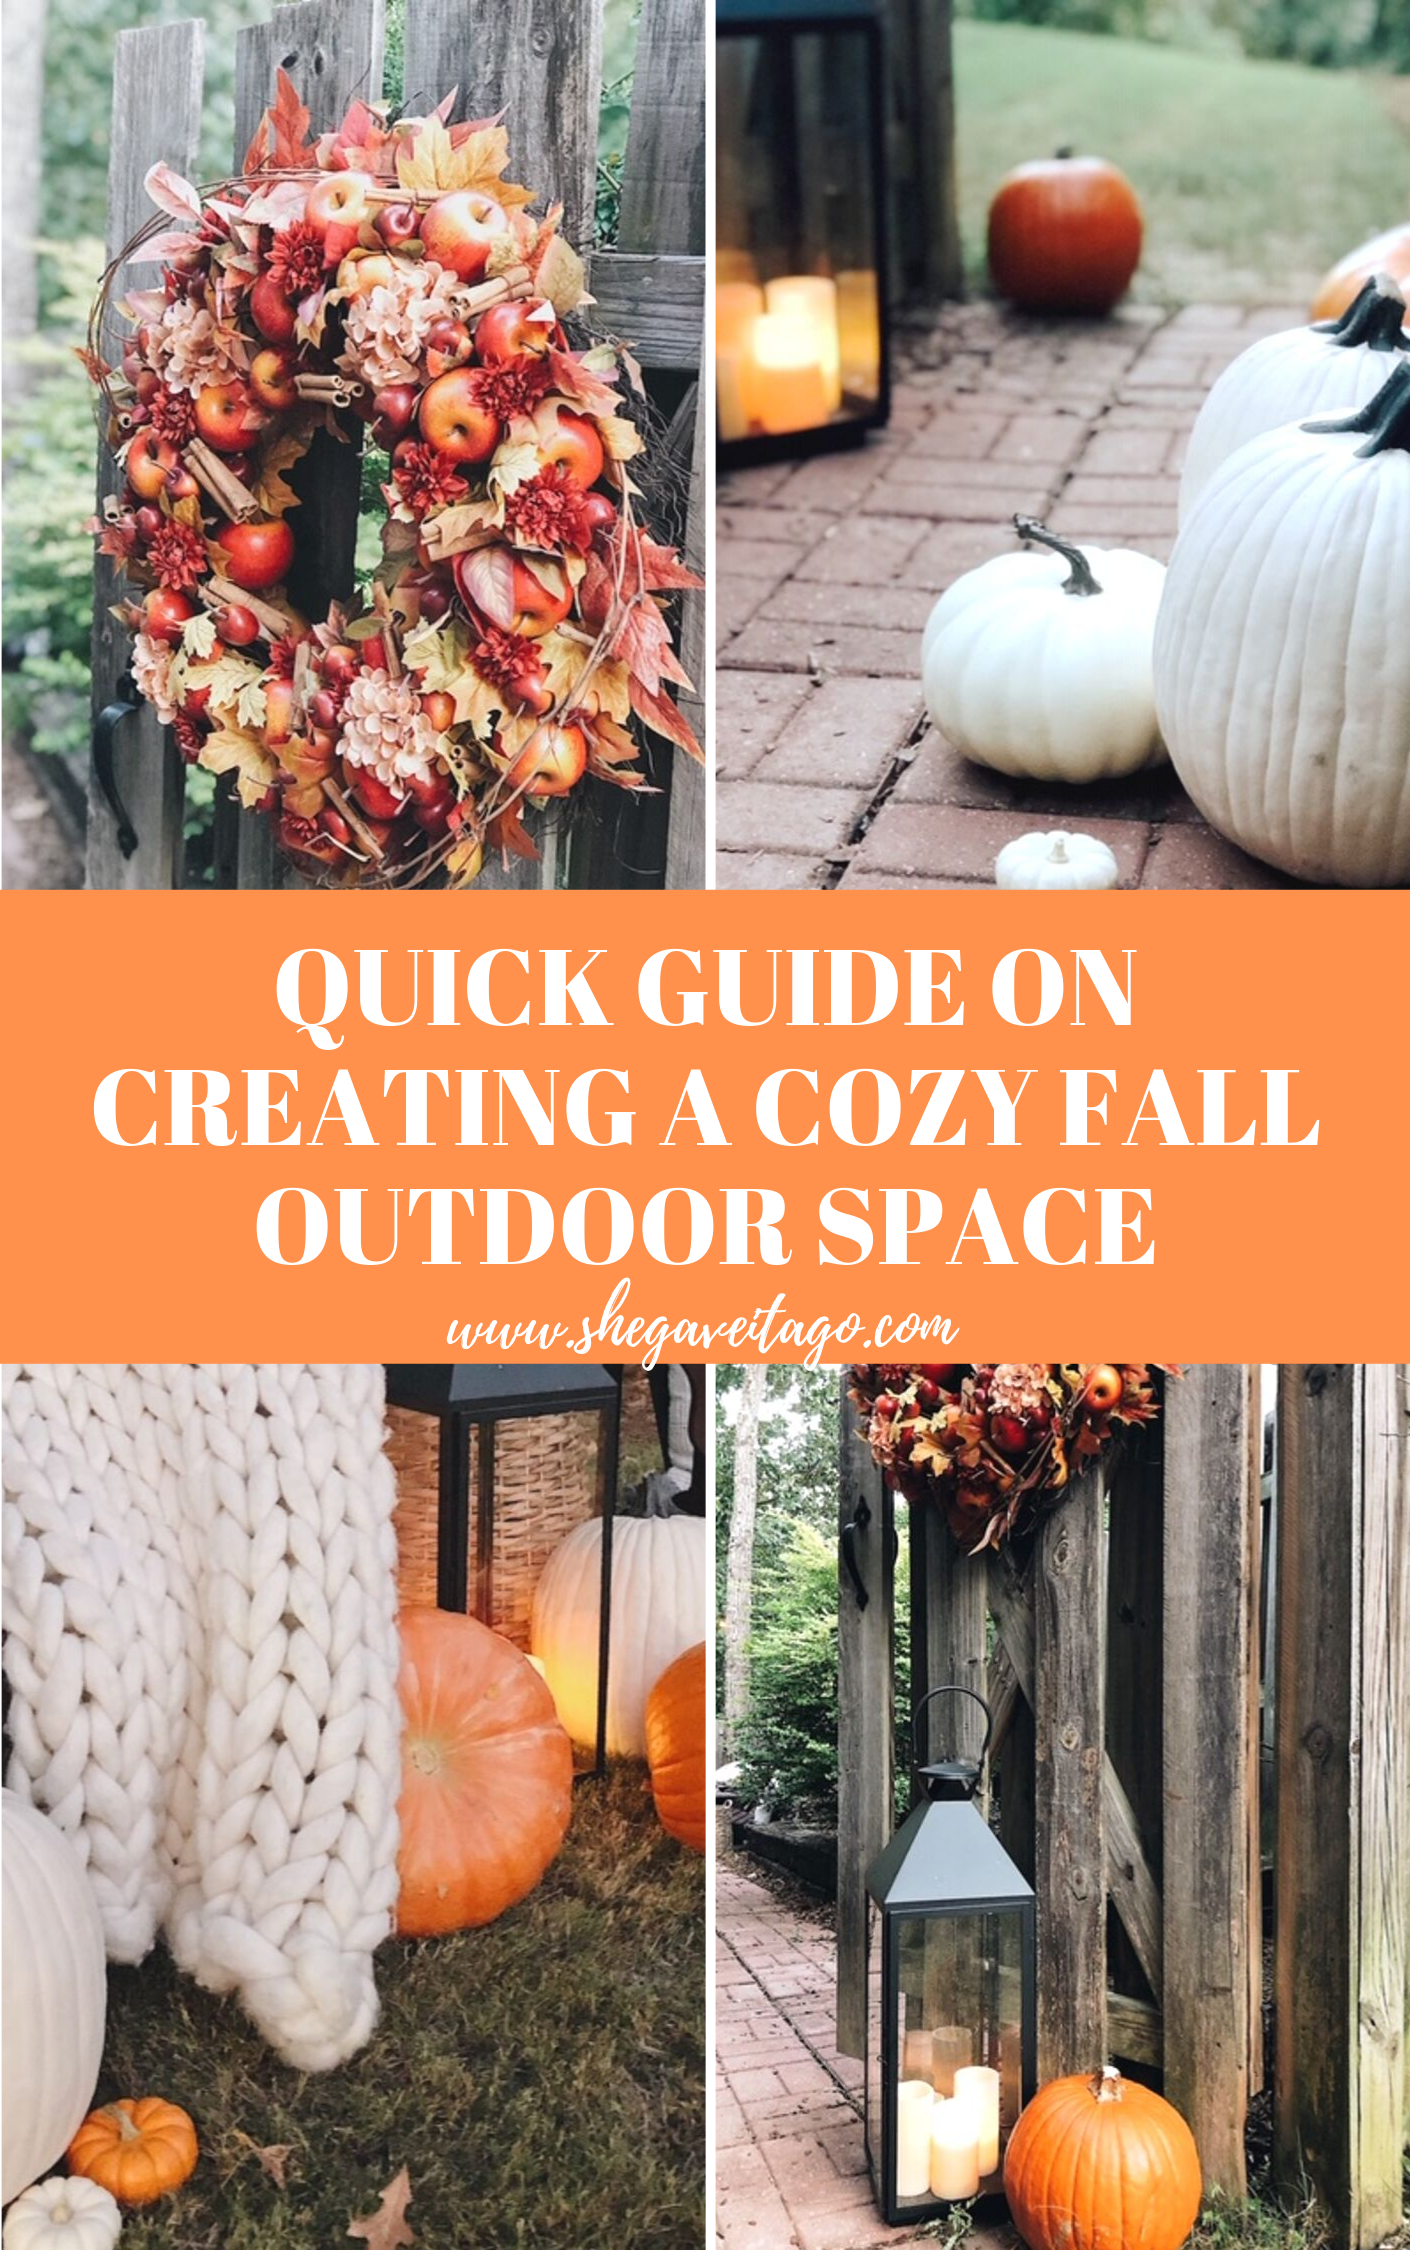 Quick Guide On Creating A Cozy Fall Outdoor Space.png